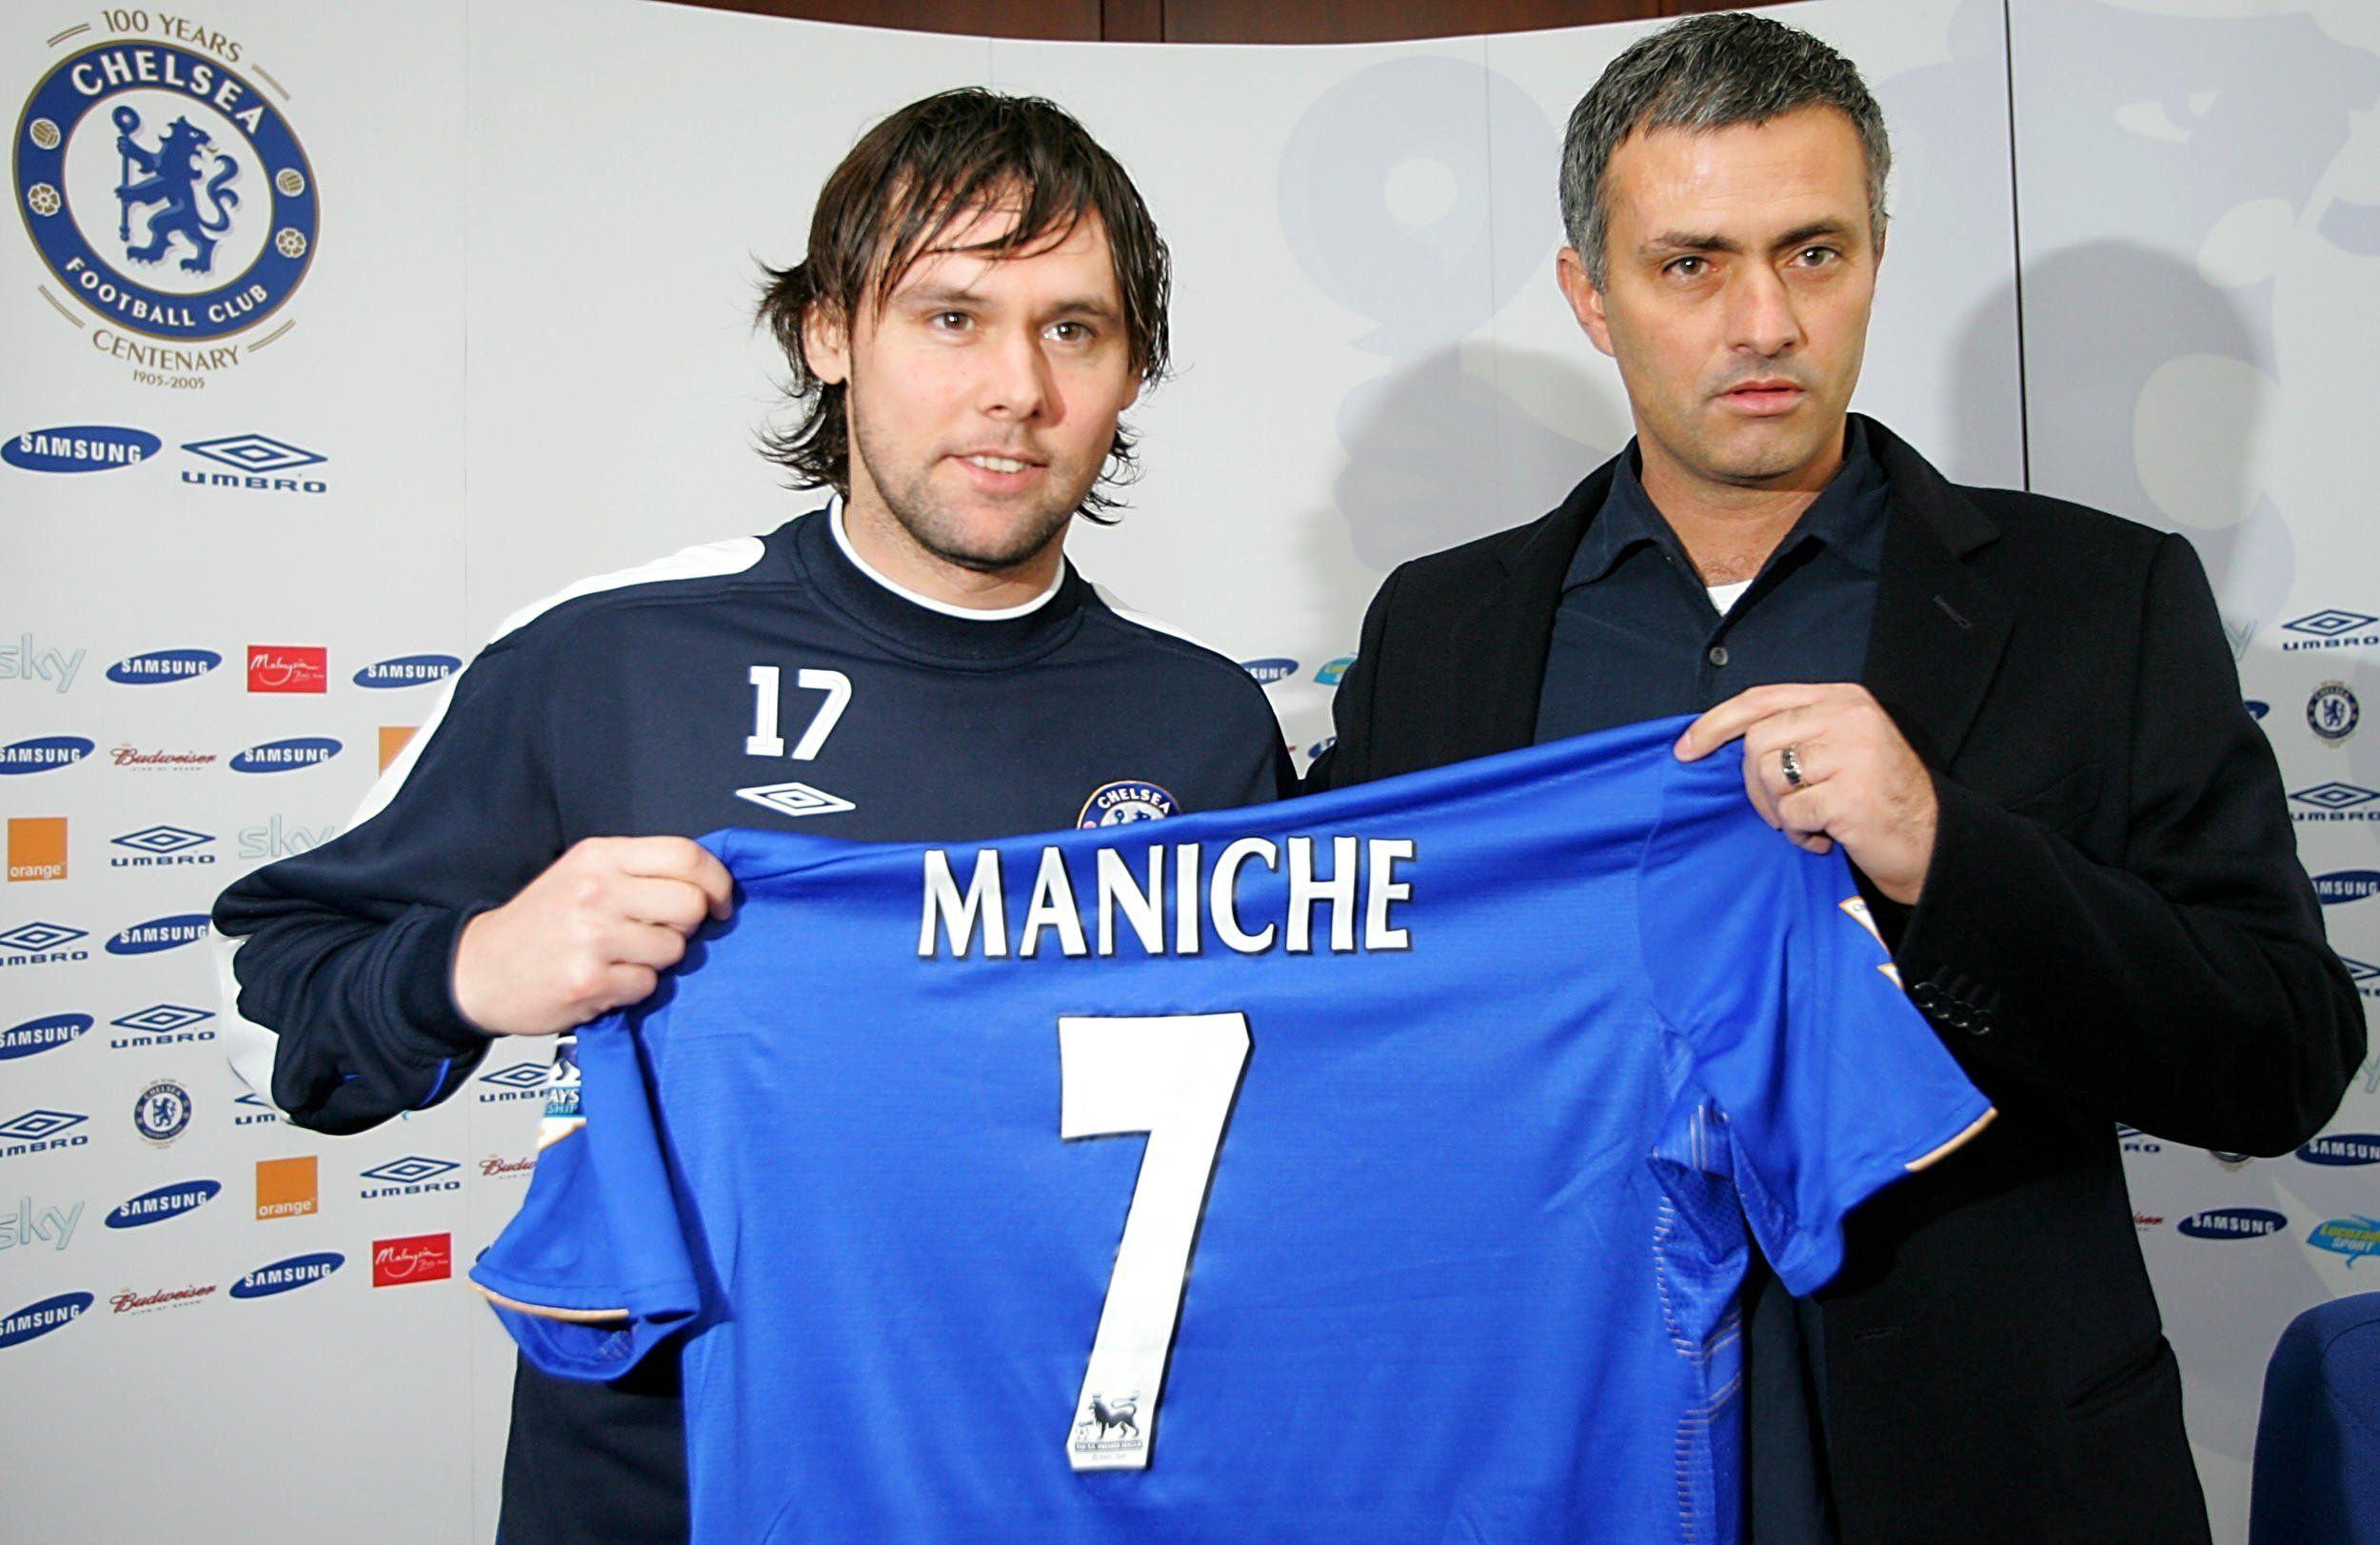 Maniche had a brief spell under Mourinho at Chelsea